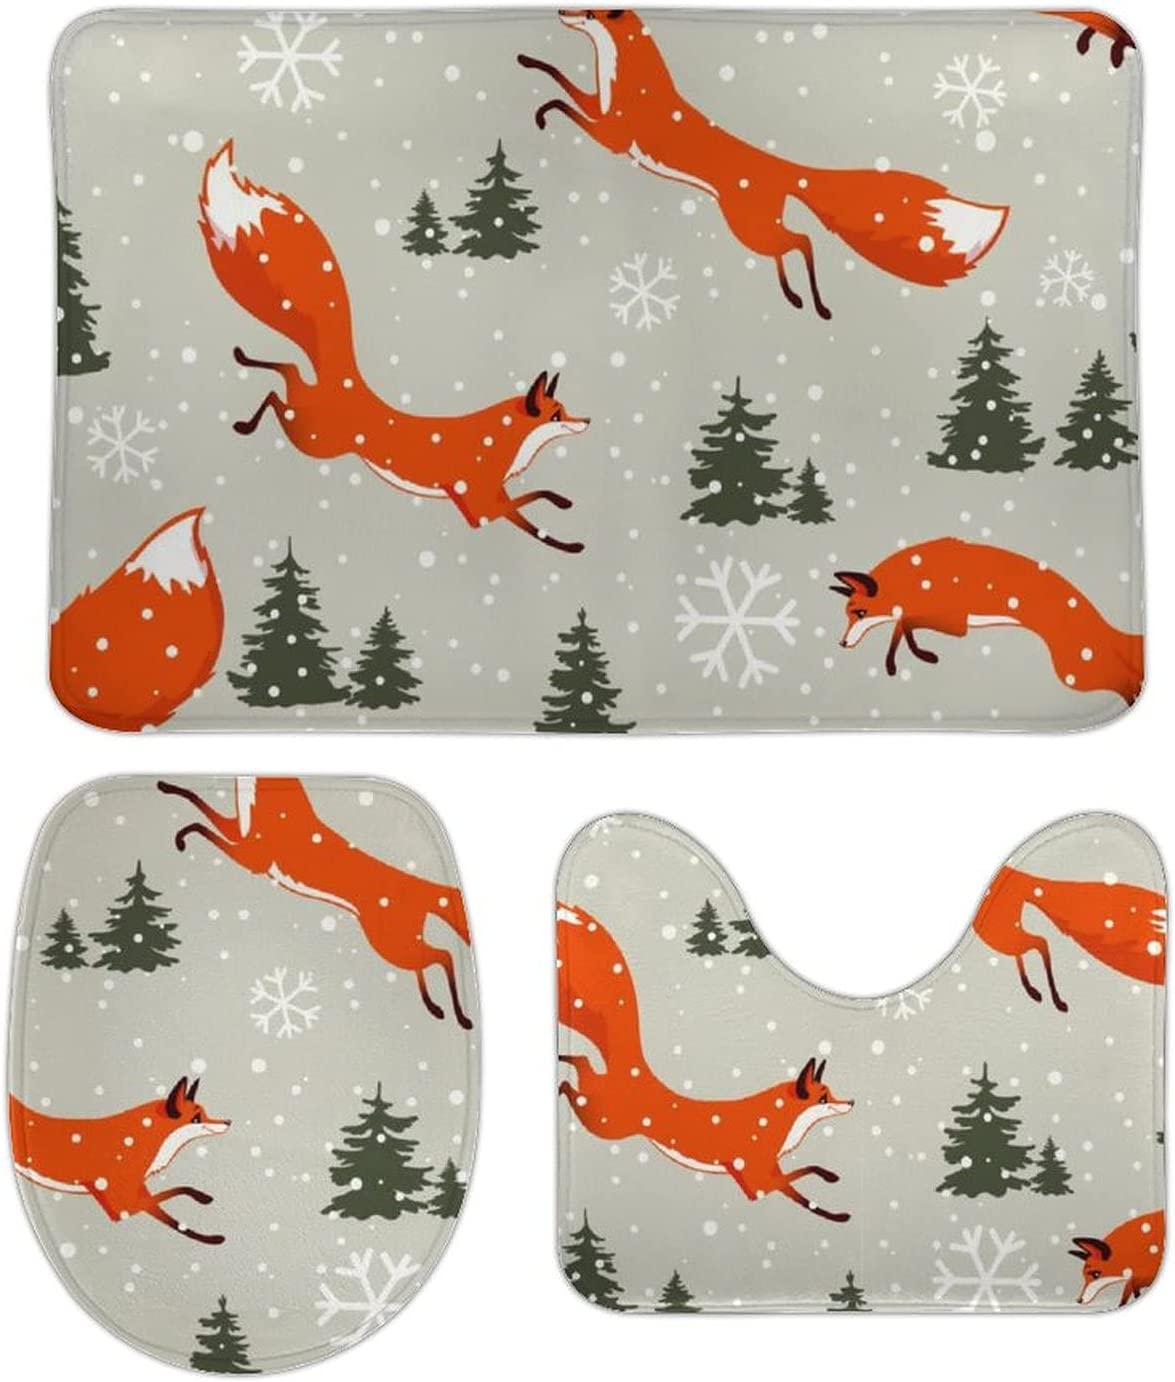 Finally resale start Cute Fox Xmas Tree online shop Snowflake Colorful Bathroom R Forest Pieces 3